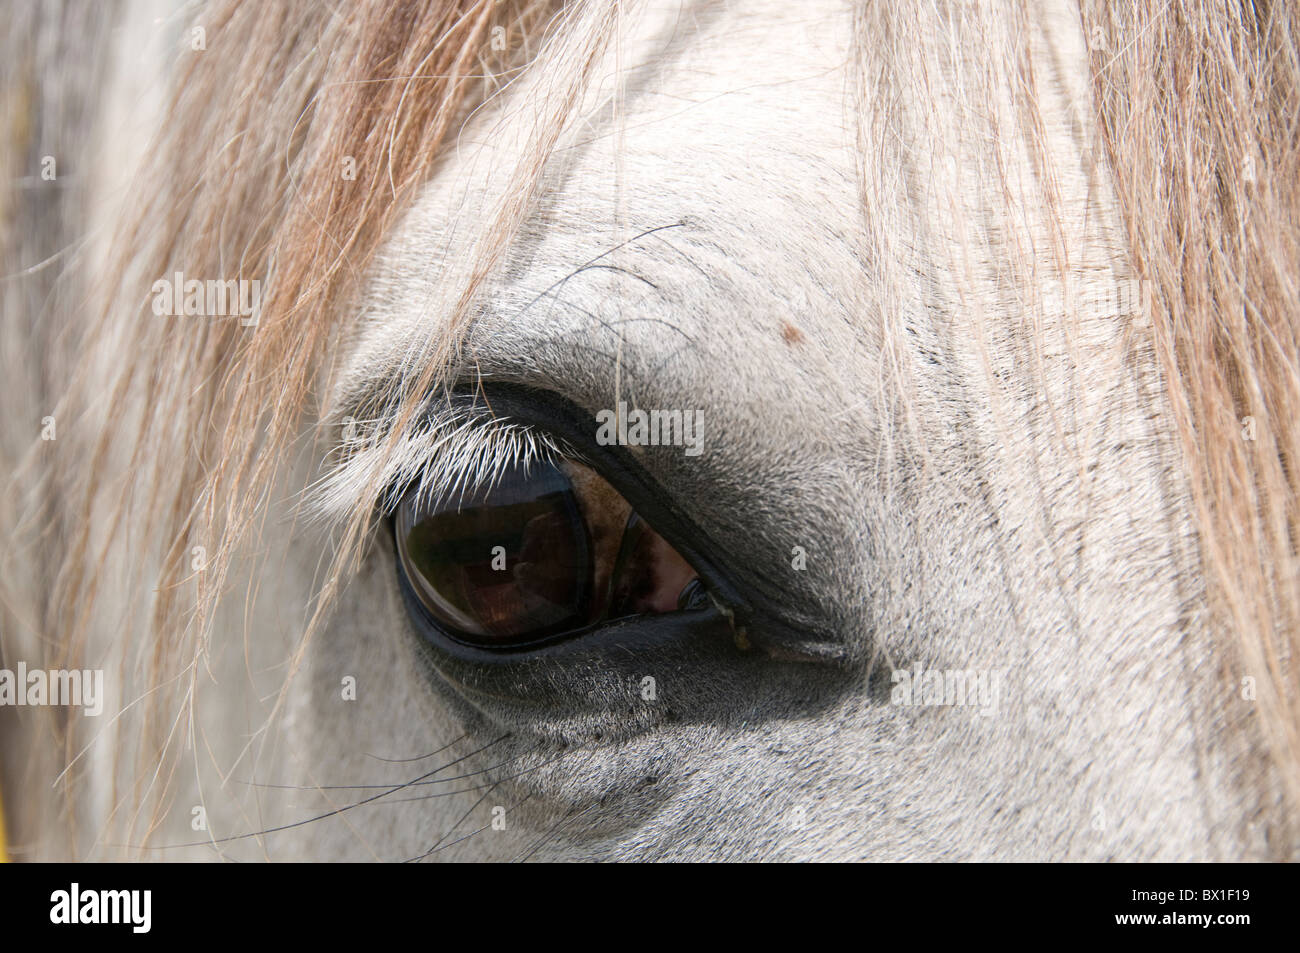 Oregon U.S.A. Gentle eye of a Lusitano mare. This is a breed of horse reared for centuries for intellignce. - Stock Image